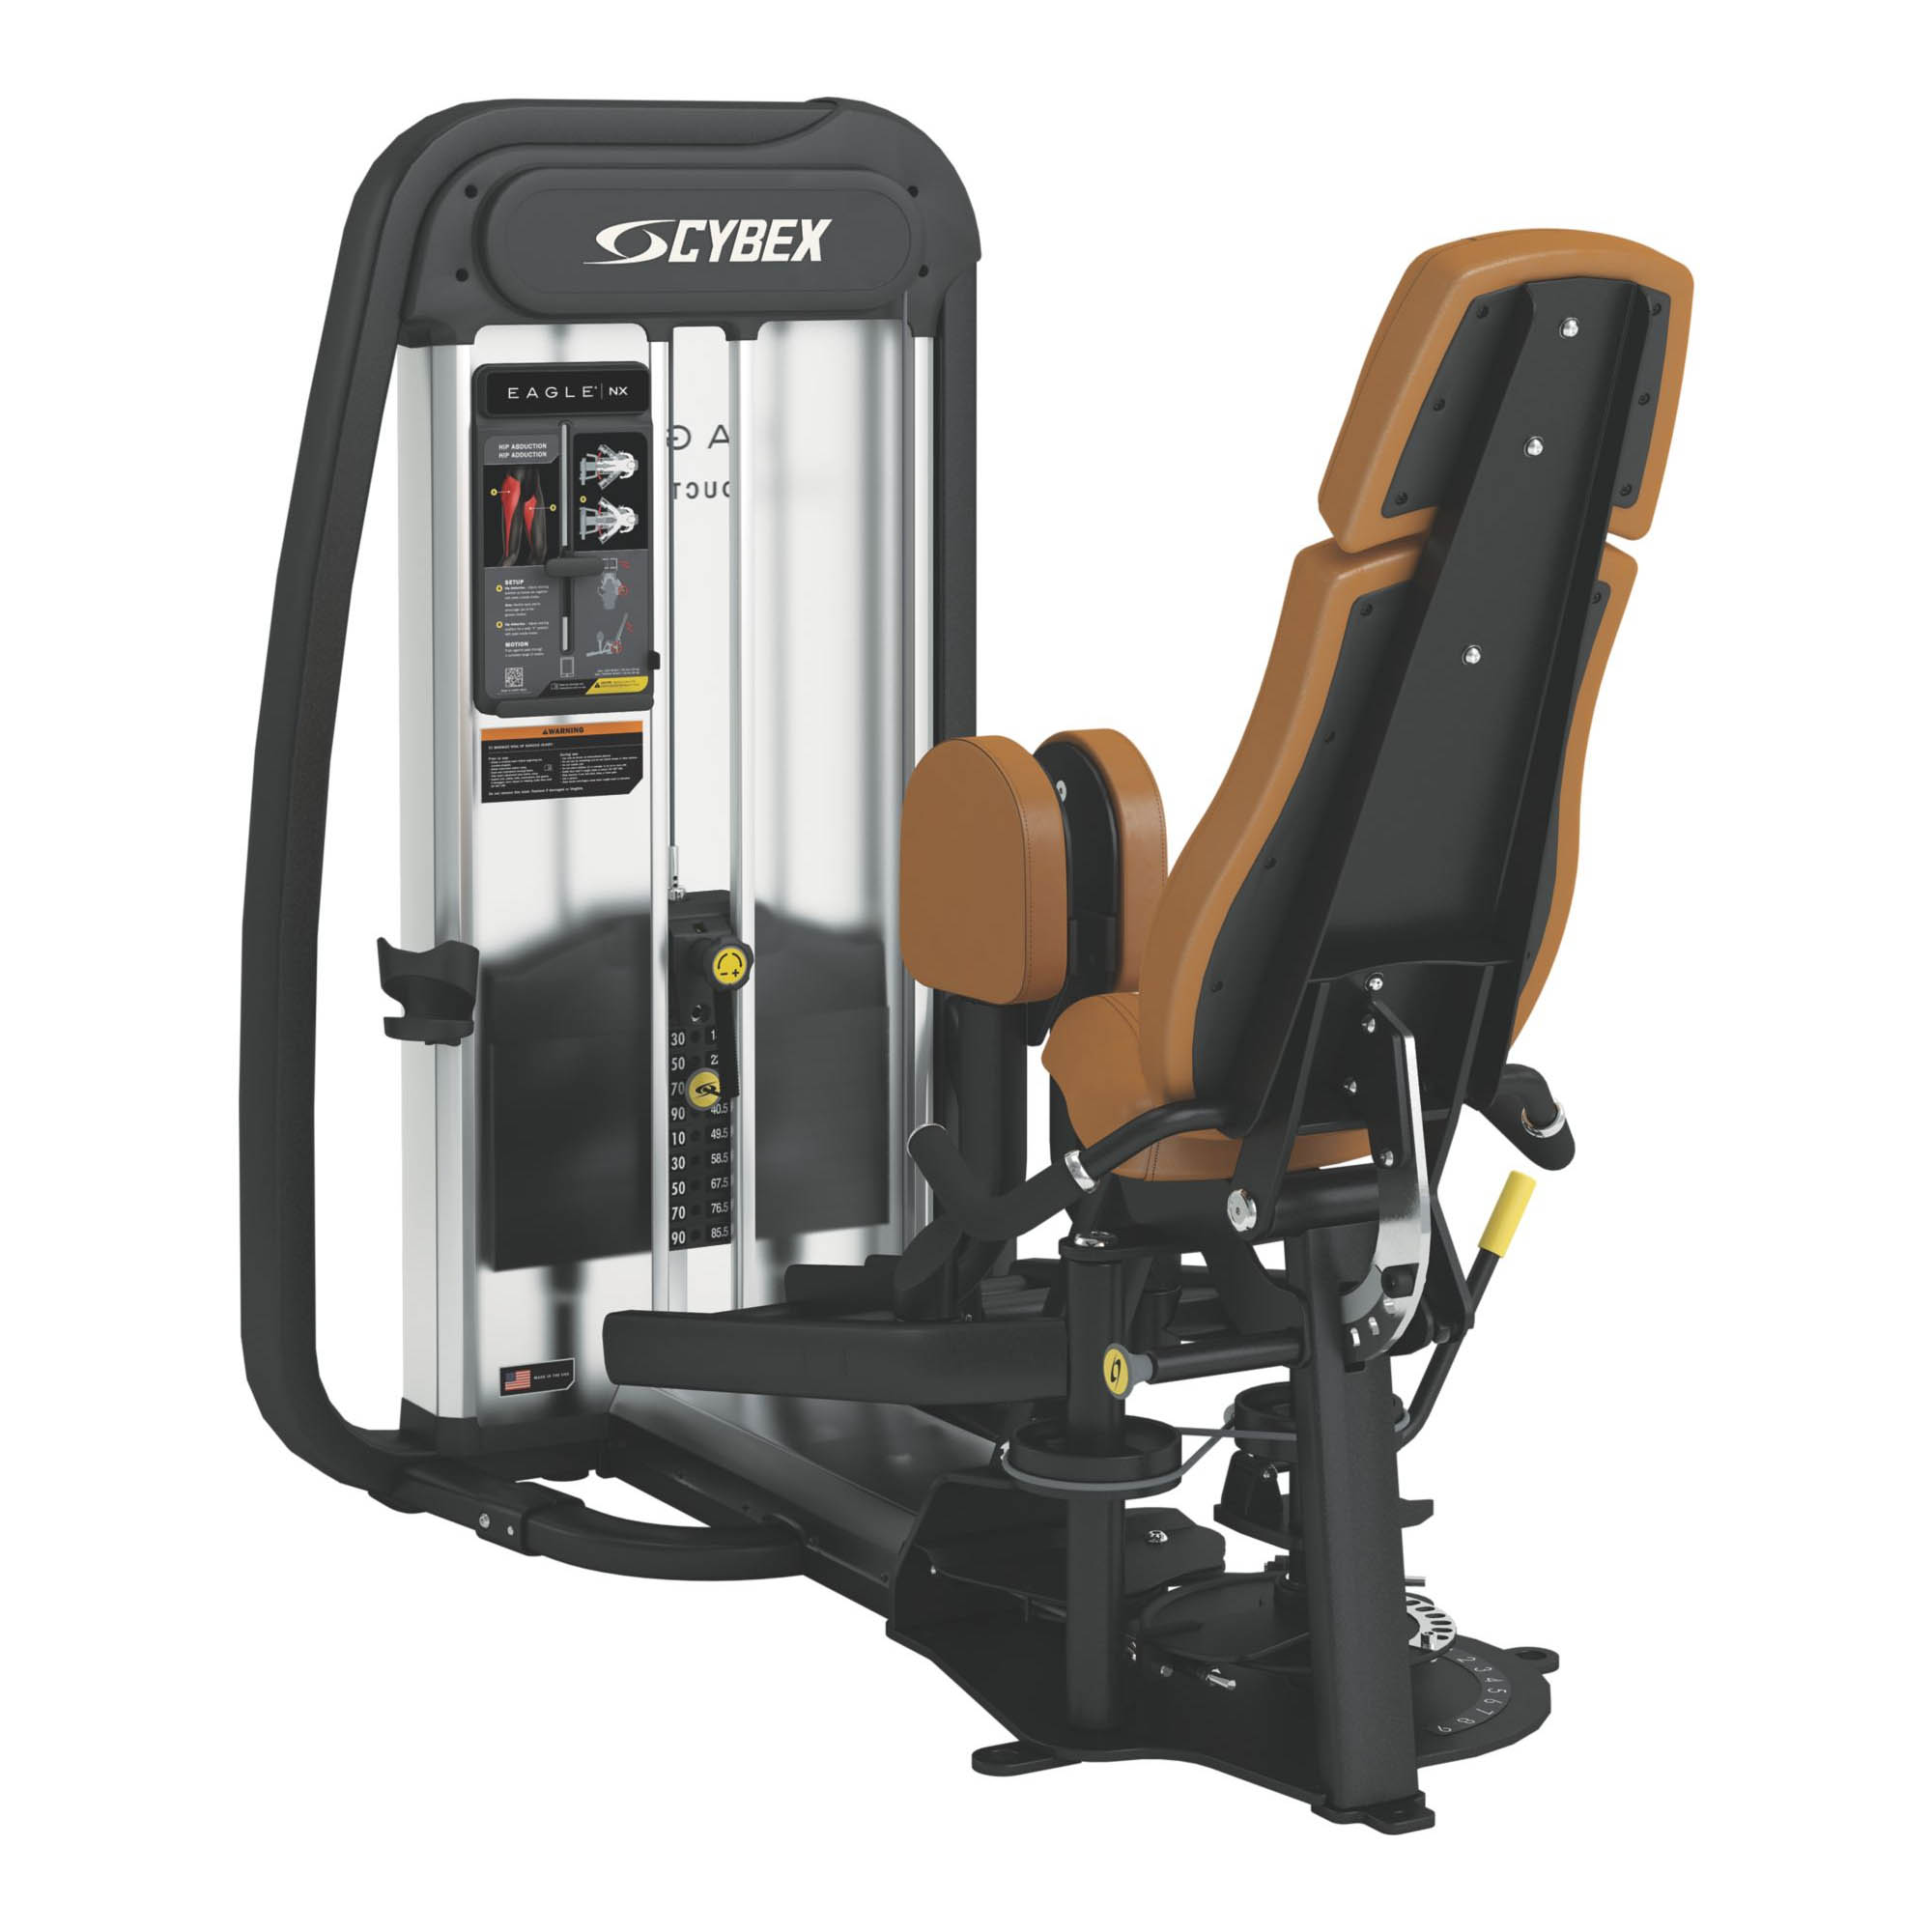 Cybex Eagle NX Hip Ab and Ad